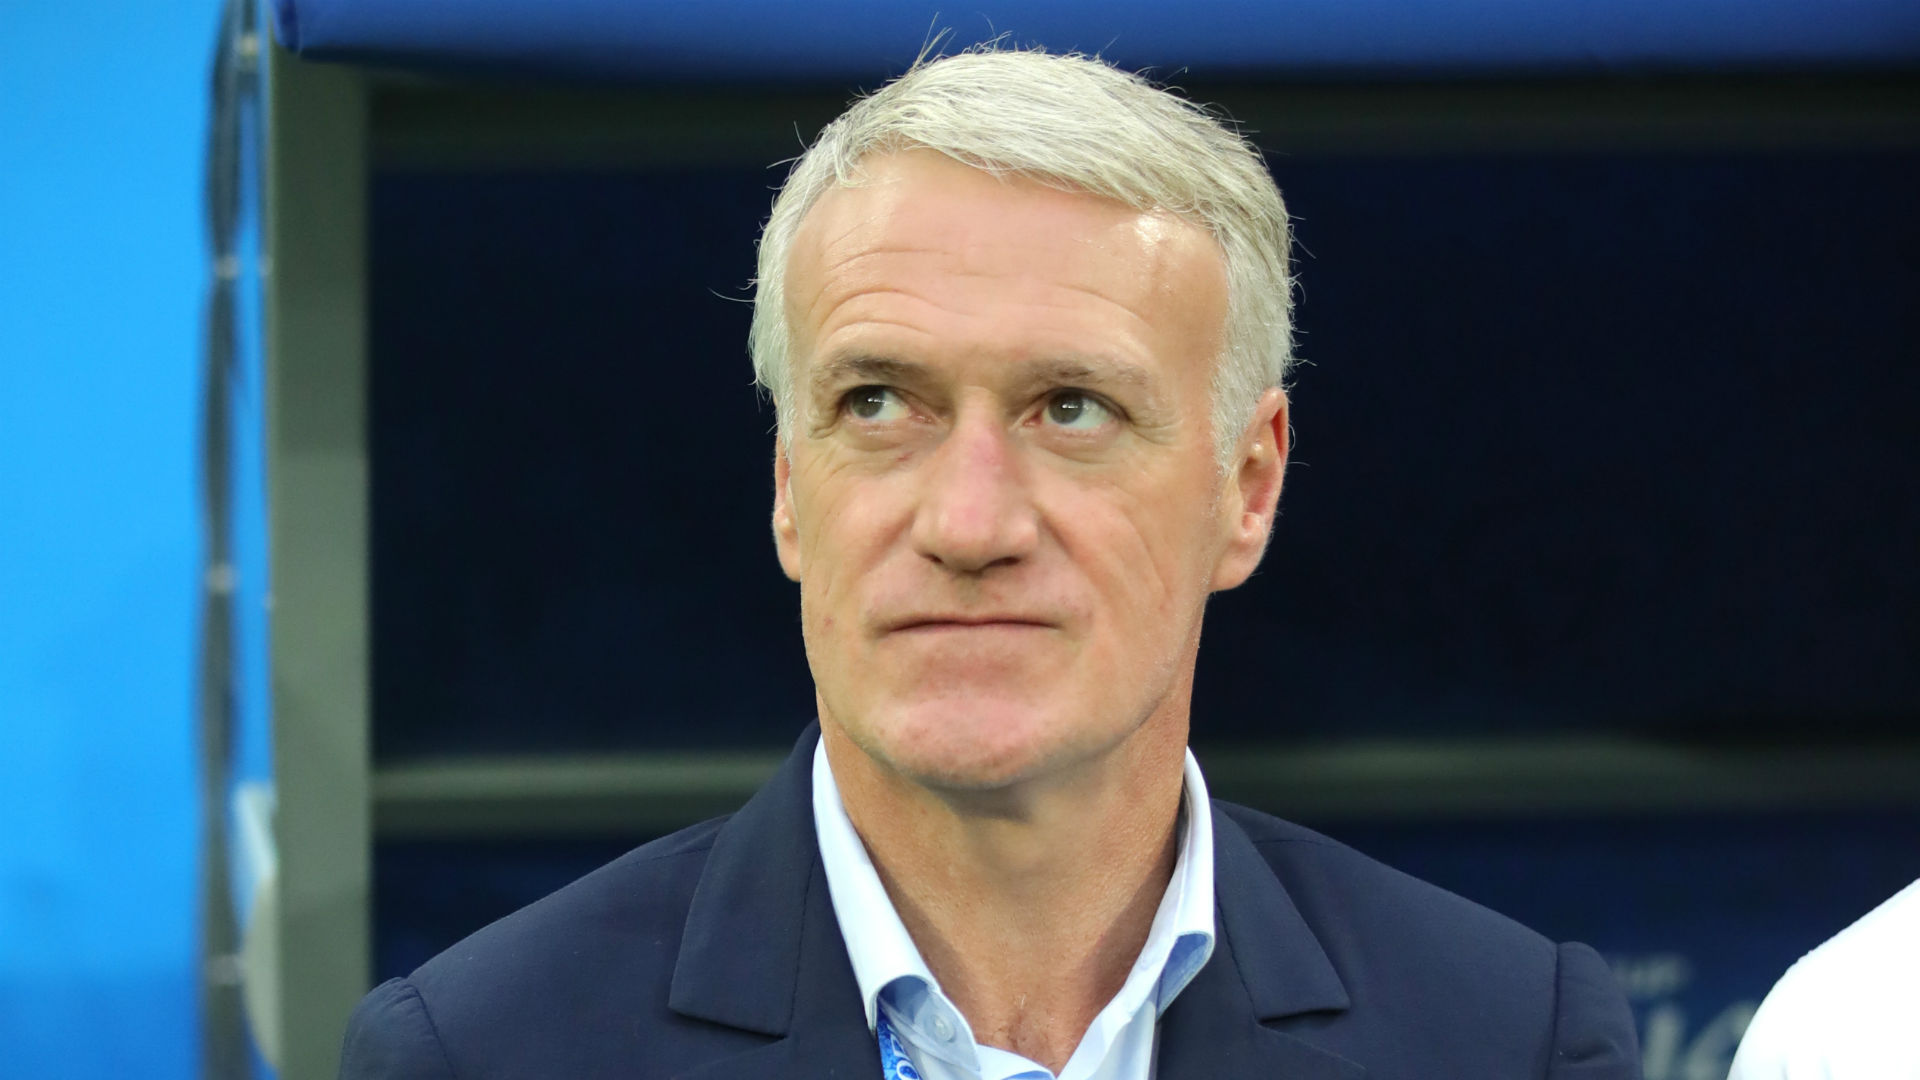 France players had a lot of fun in Iceland rout – Deschamps